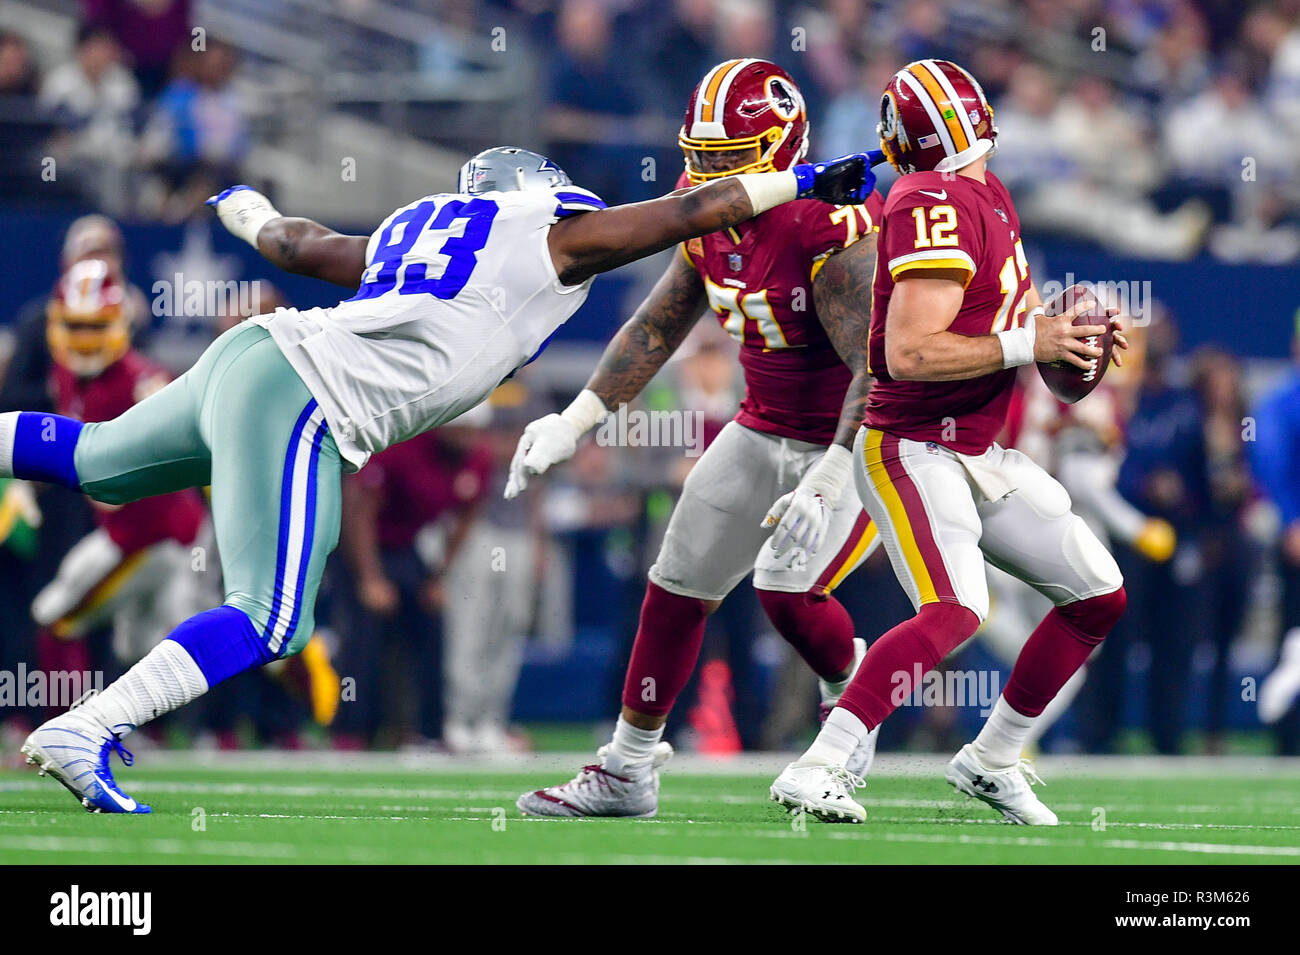 November 22, 2018:.Washington Redskins quarterback Colt McCoy (12) tries to elude Dallas Cowboys defensive tackle Daniel Ross (93) as he accidentally pulls on the face mask during an NFL football game between the Washington Redskins and Dallas Cowboys at AT&T Stadium in Arlington, Texas. .Manny Flores/CSM - Stock Image